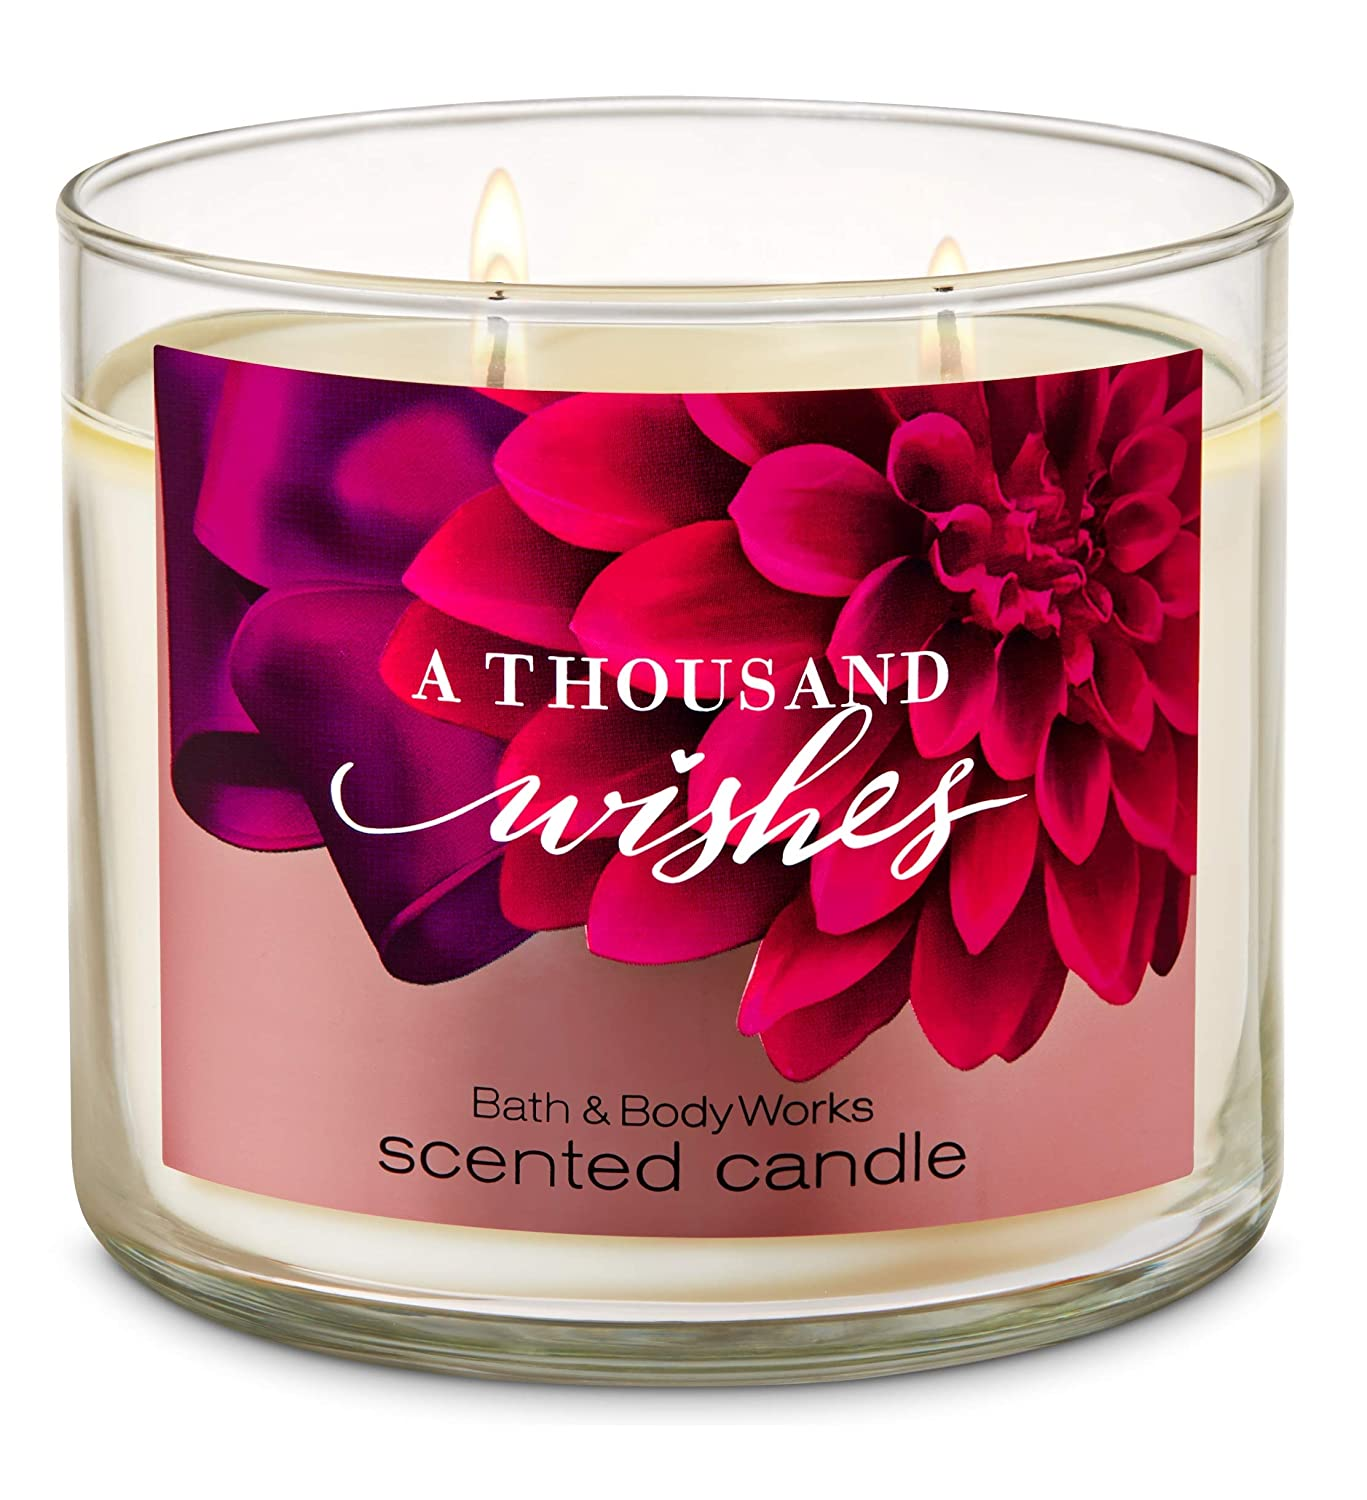 1 Bath /& Body Works A THOUSAND WISHES Youre Large 3-Wick Candle 14.5 oz